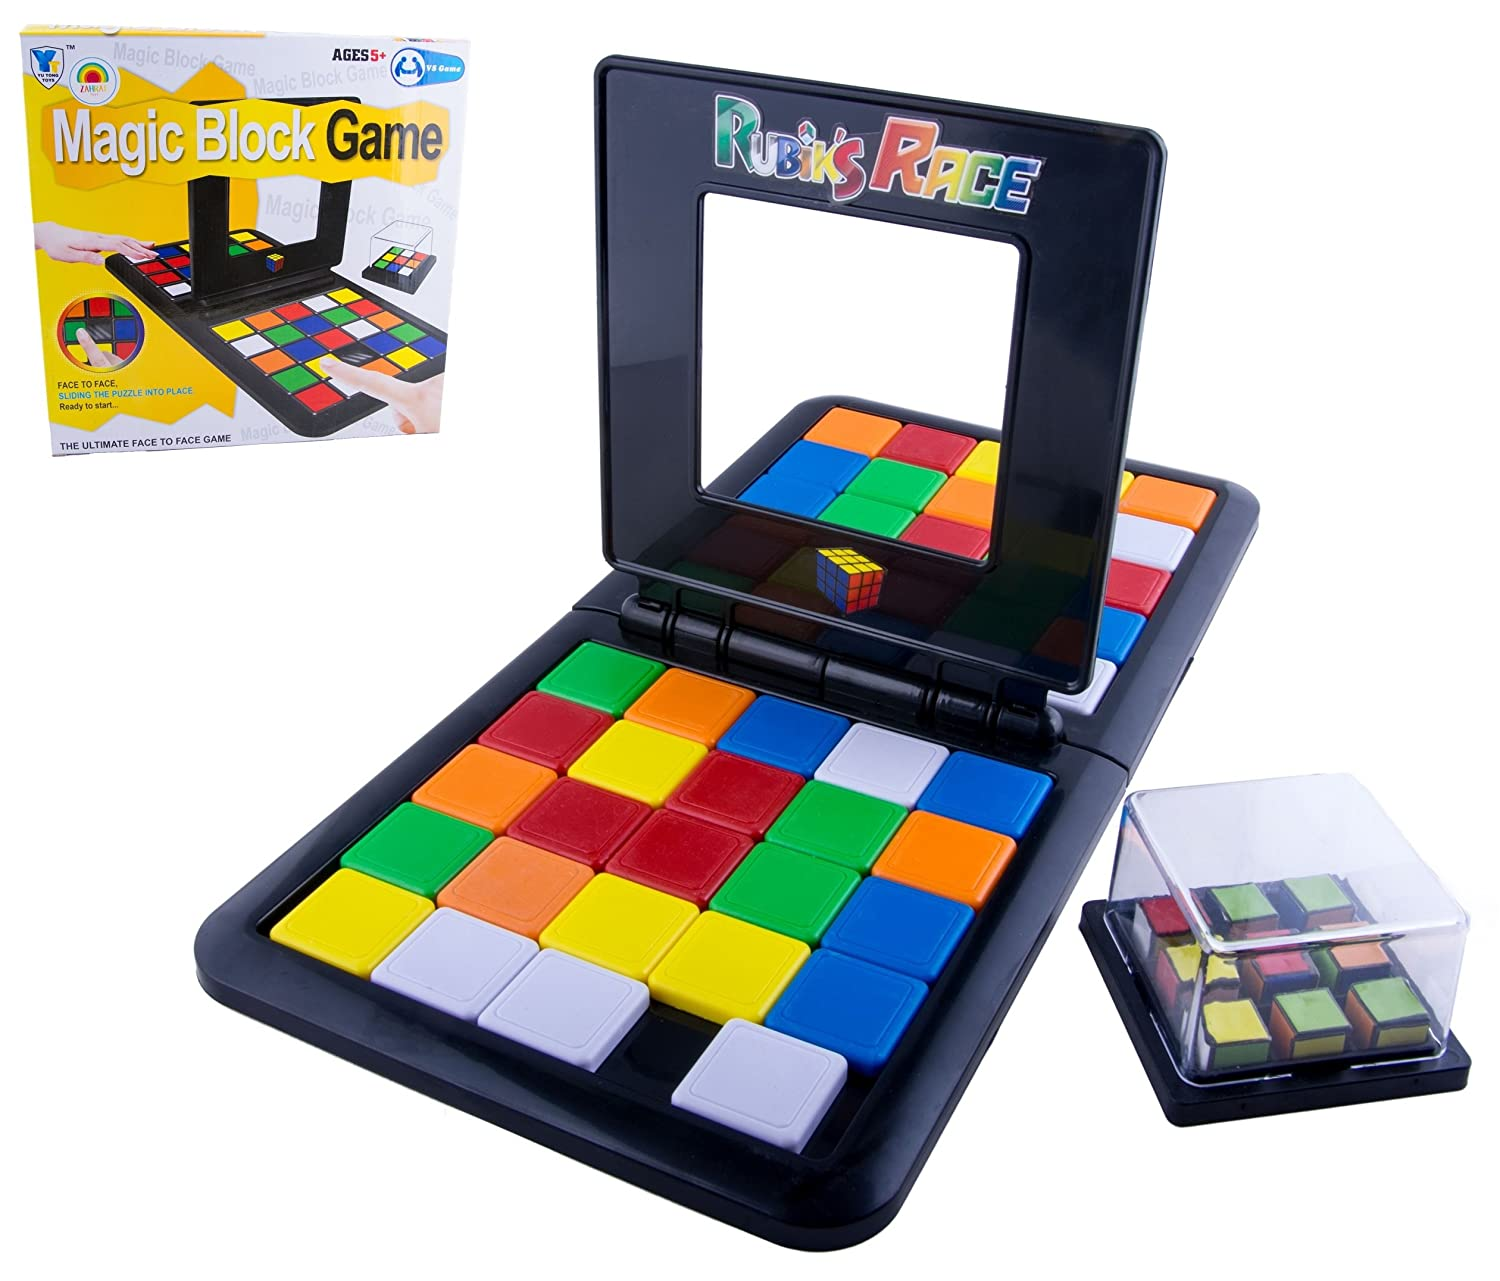 STAY Active Magic Block Game (Rubik's Race) by UK Stock - Non Slip & Includes 2 Drawstring Pouches!